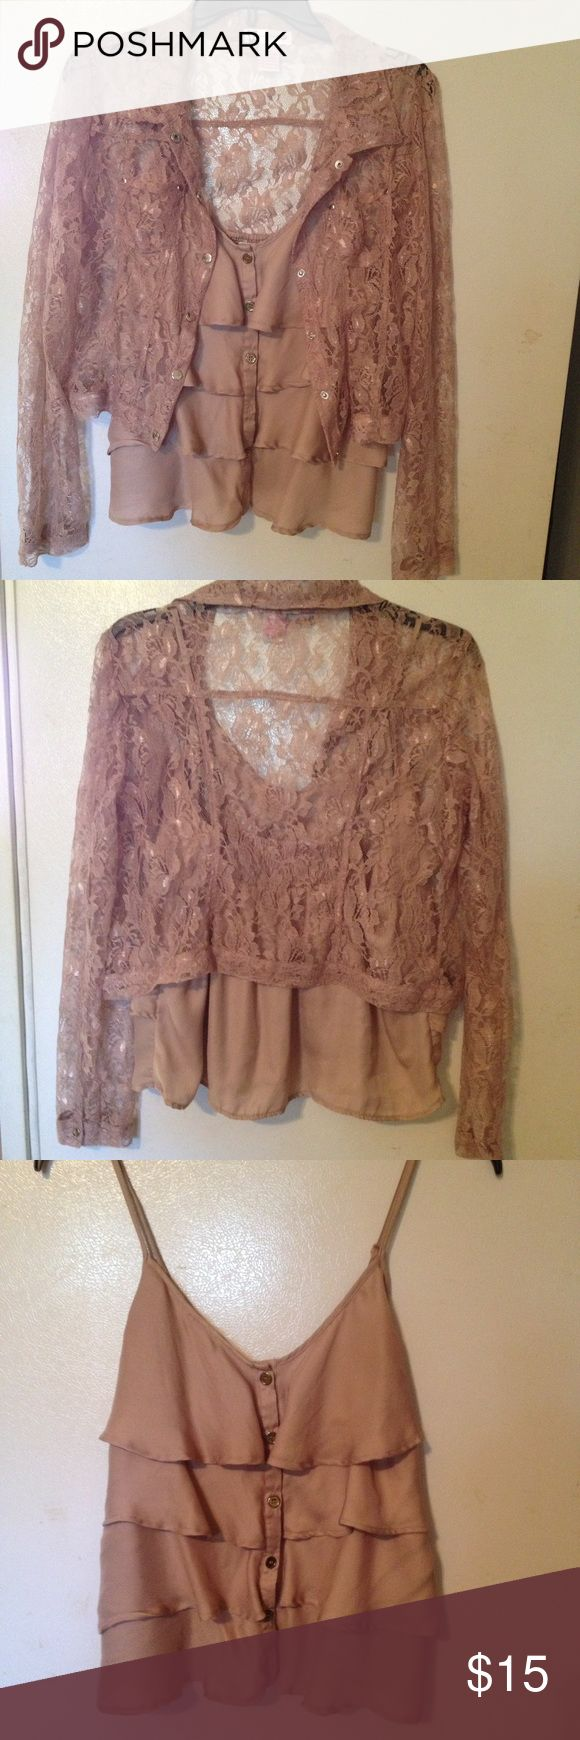 Body Central 2 piece beige blouse size M Body Central beige layered camisole size large with long sleeve lace jacket size M Body Central Tops Blouses